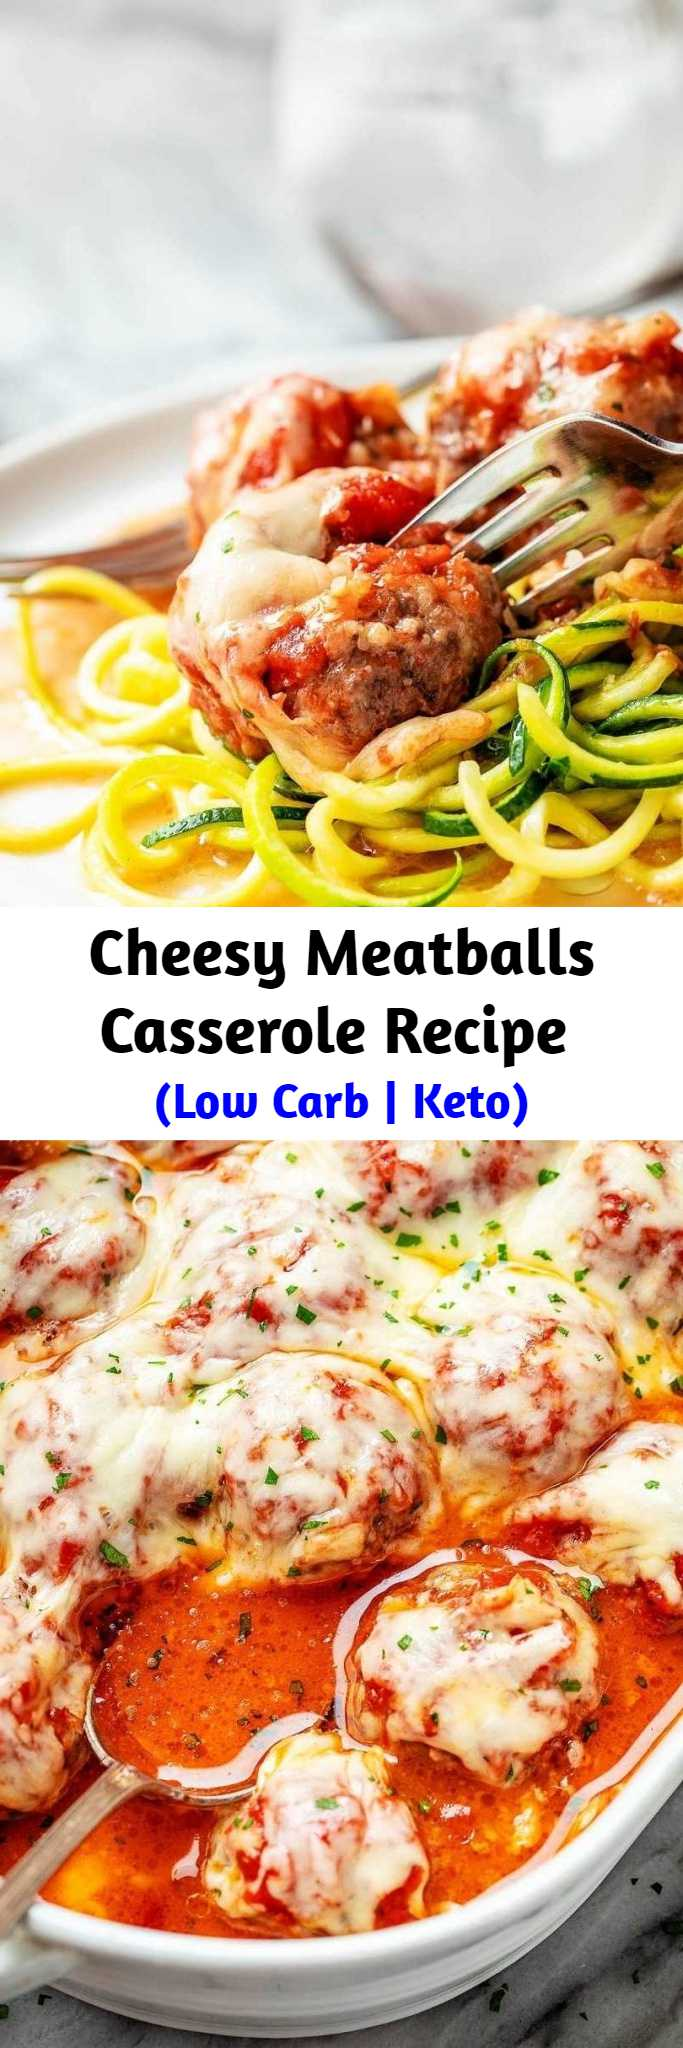 Cheesy Meatballs Casserole Recipe (Low Carb   Keto) - Looking for a great low carb dinner option? This low carb turkey meatball casserole recipe is absolutely fabulous. #lowcarb #meatballs #recipe